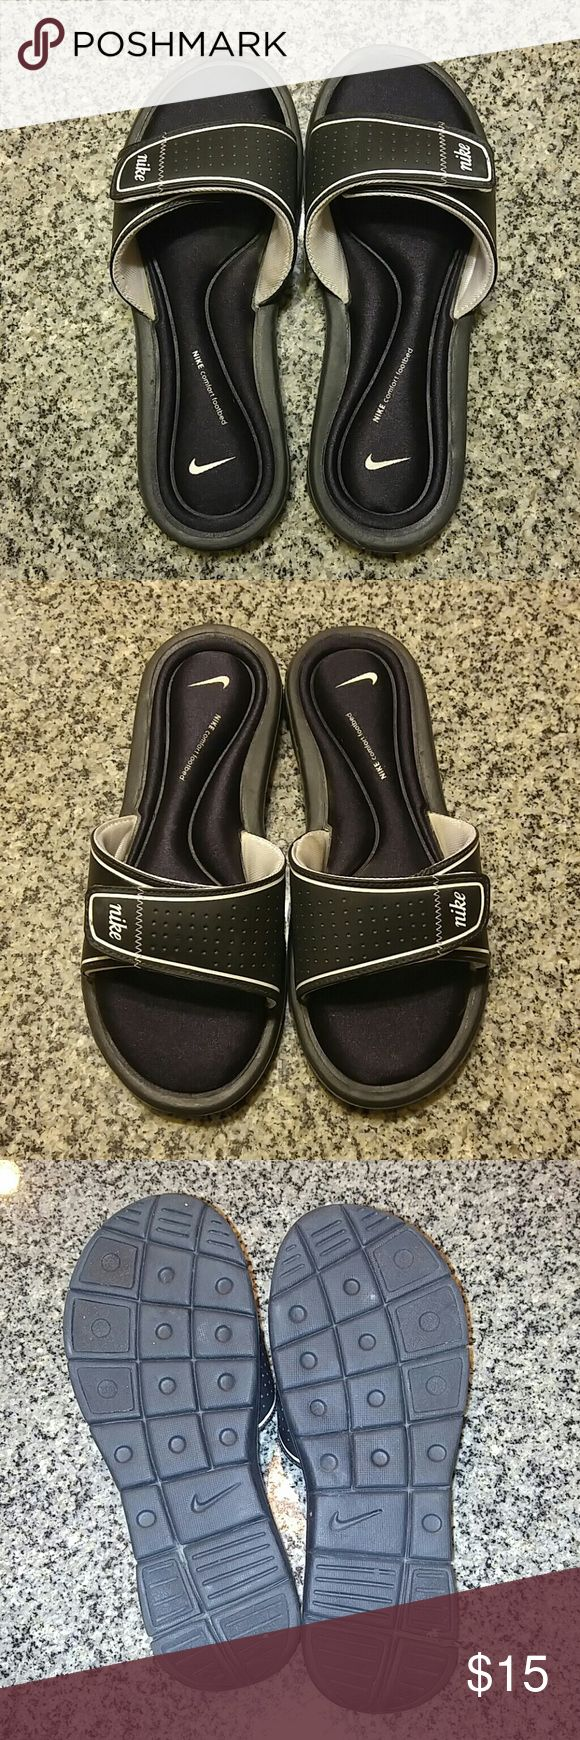 Nike Slide Sandals Black with white swoosh. Comfort footbed bounces right back into shape.  Velcro closure to adjust fit. Excellent condition. Size 8. Nike Shoes Sandals